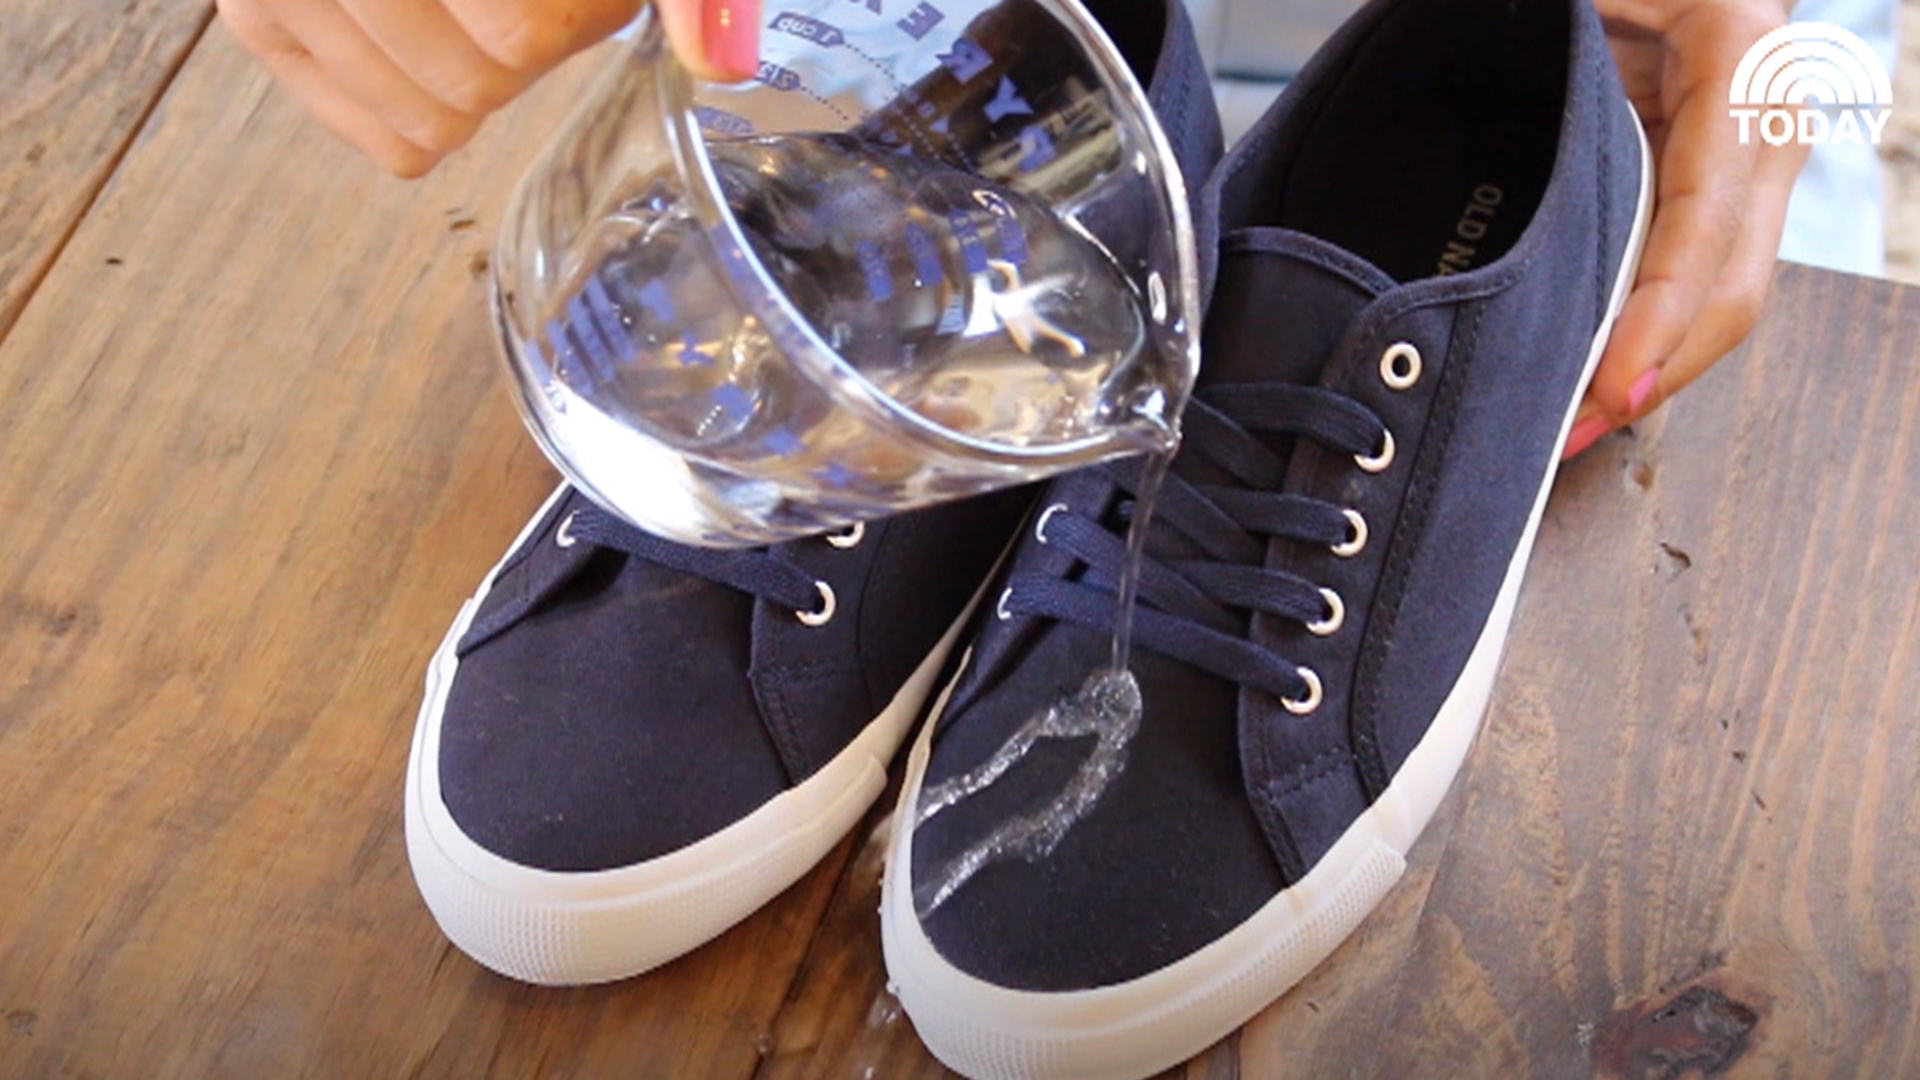 How to waterproof your shoes: Grab a